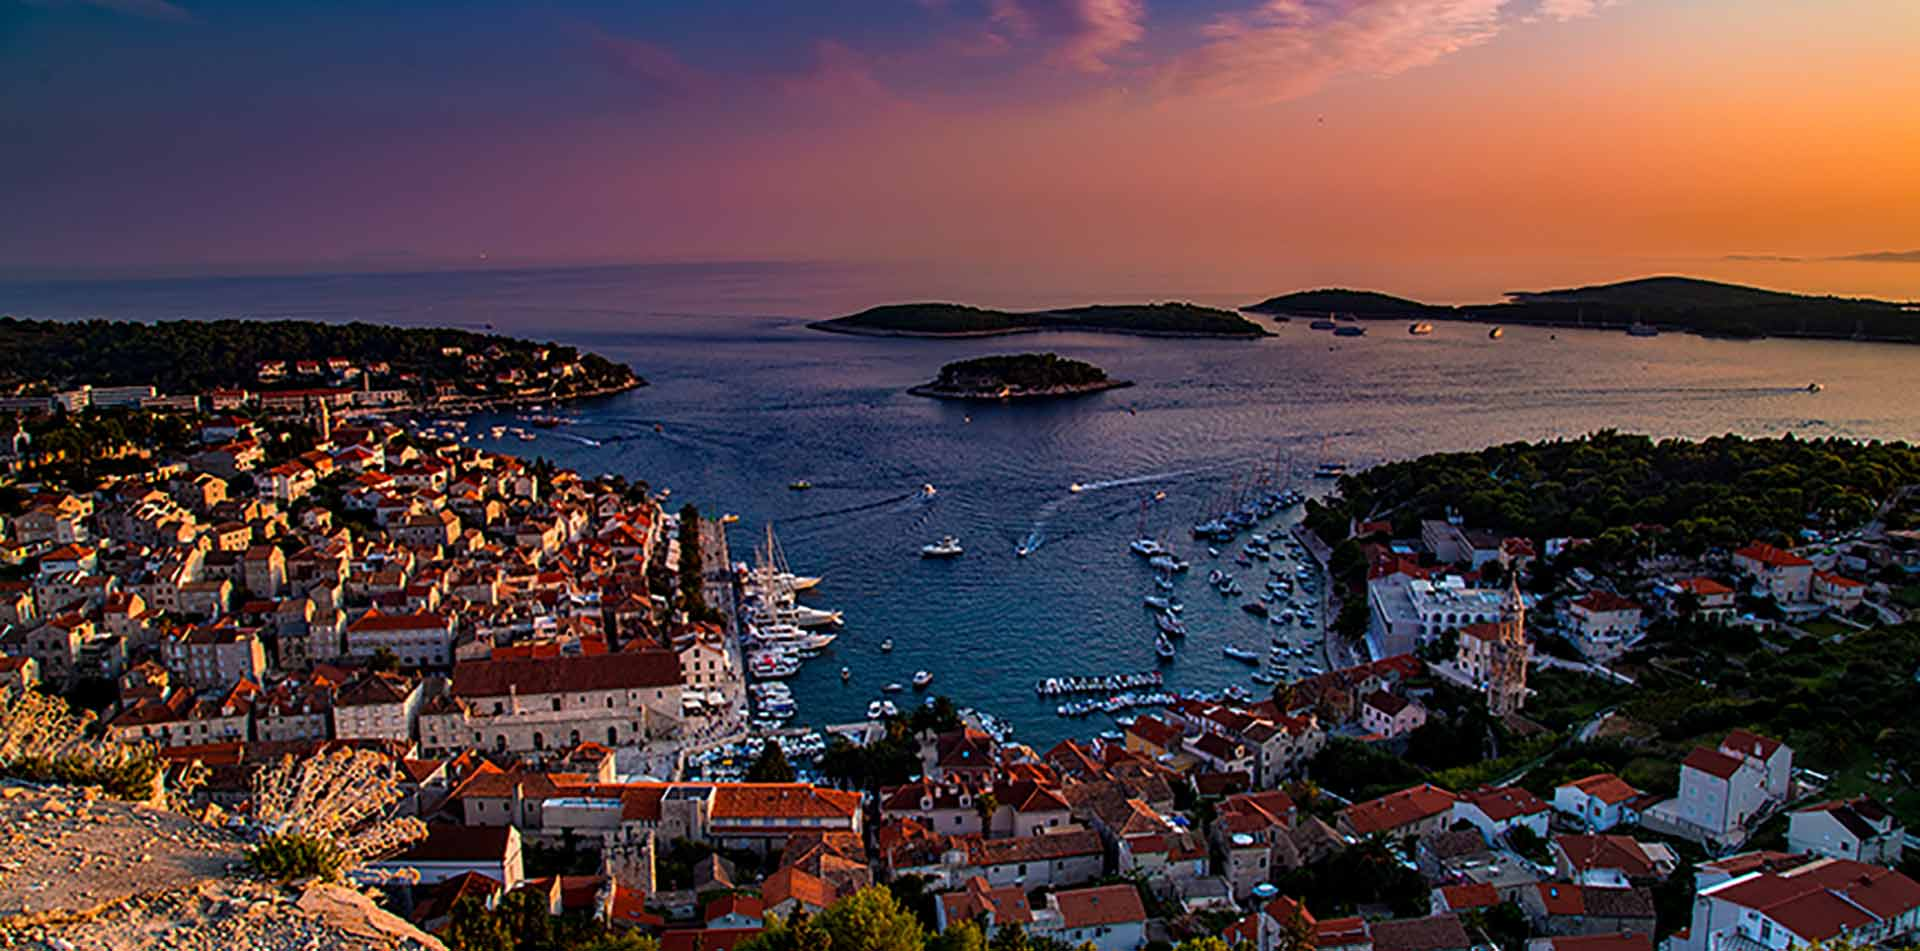 Hvar Harbor and City at Sunset, Croatia